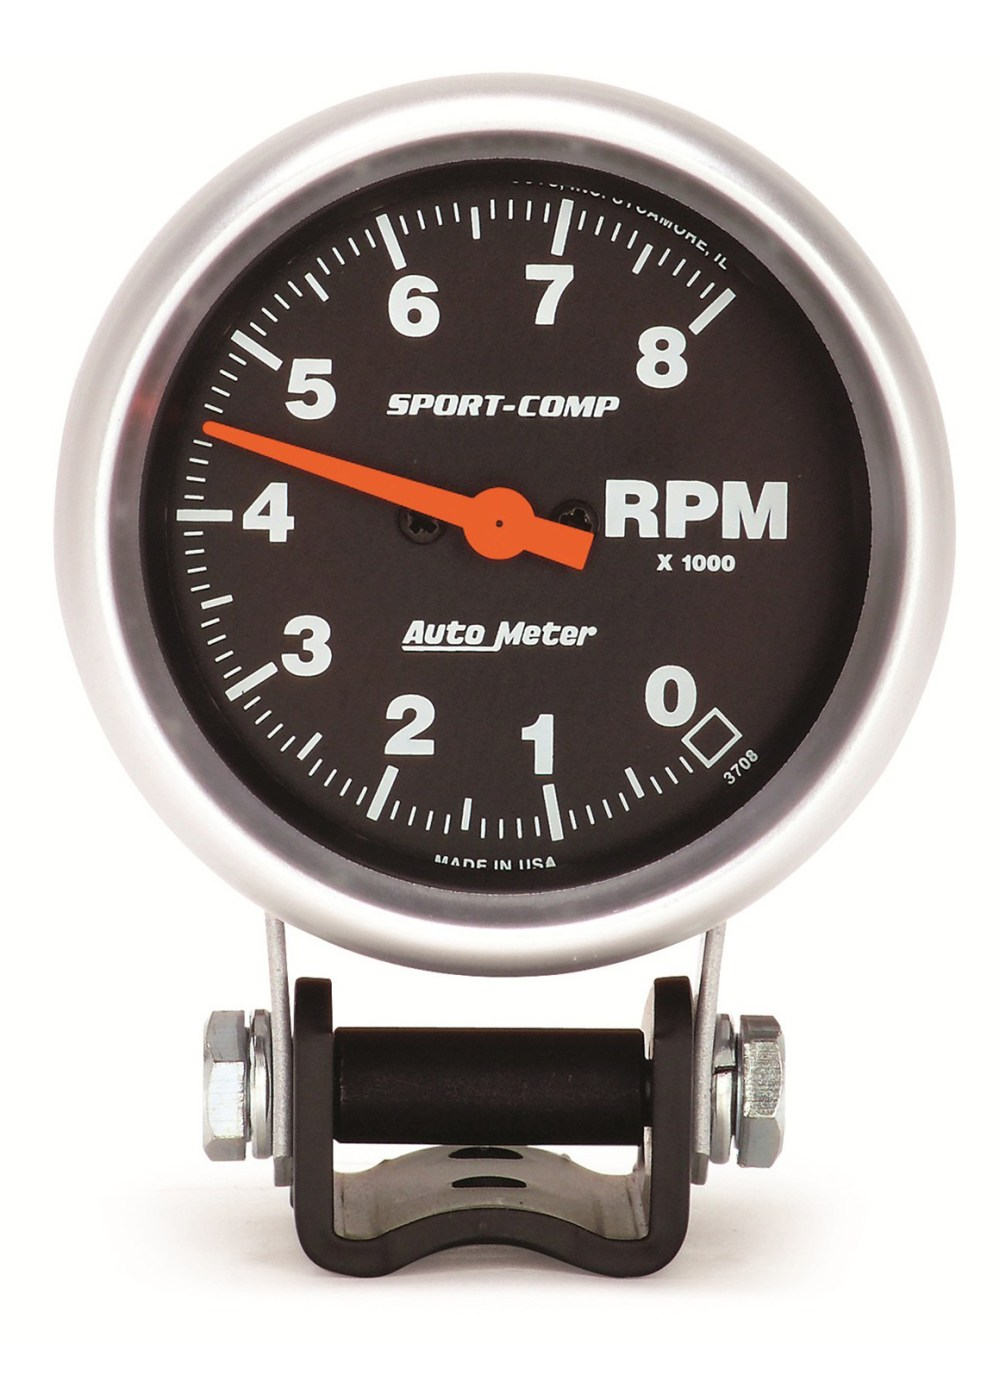 medium resolution of  u s made air core electronic movements that resist vibration and provide extremely accurate motion this compact mini tach has a street price of around